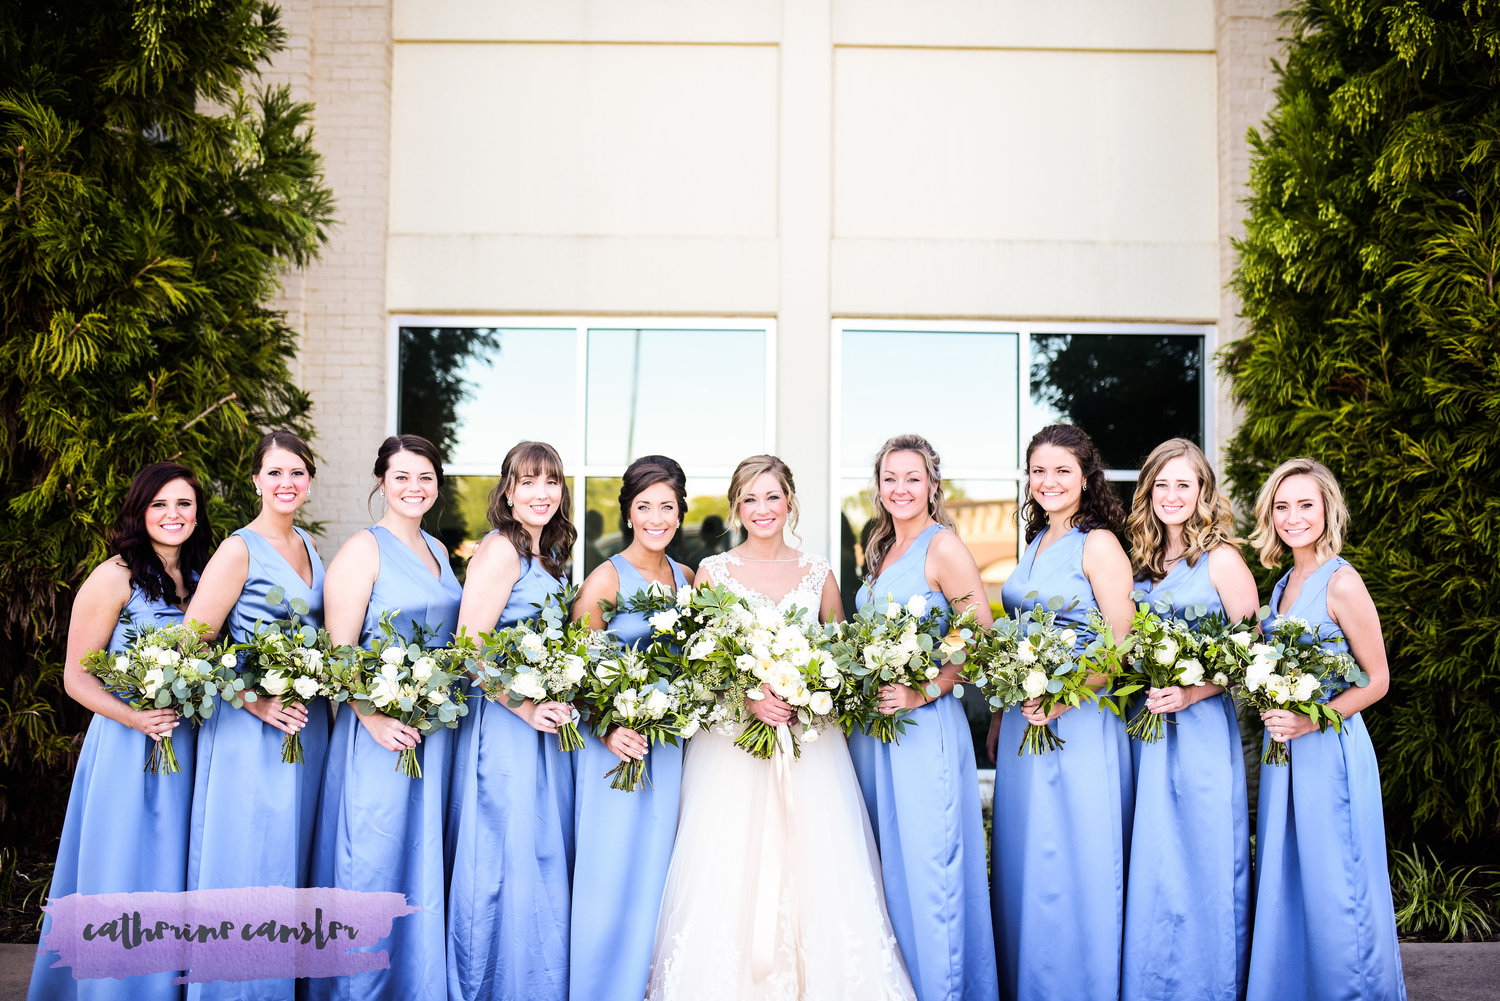 Loose and romantic bouquets of white and green.   Flowers by Flower Buds. Photo by Catherine Cansler Photography